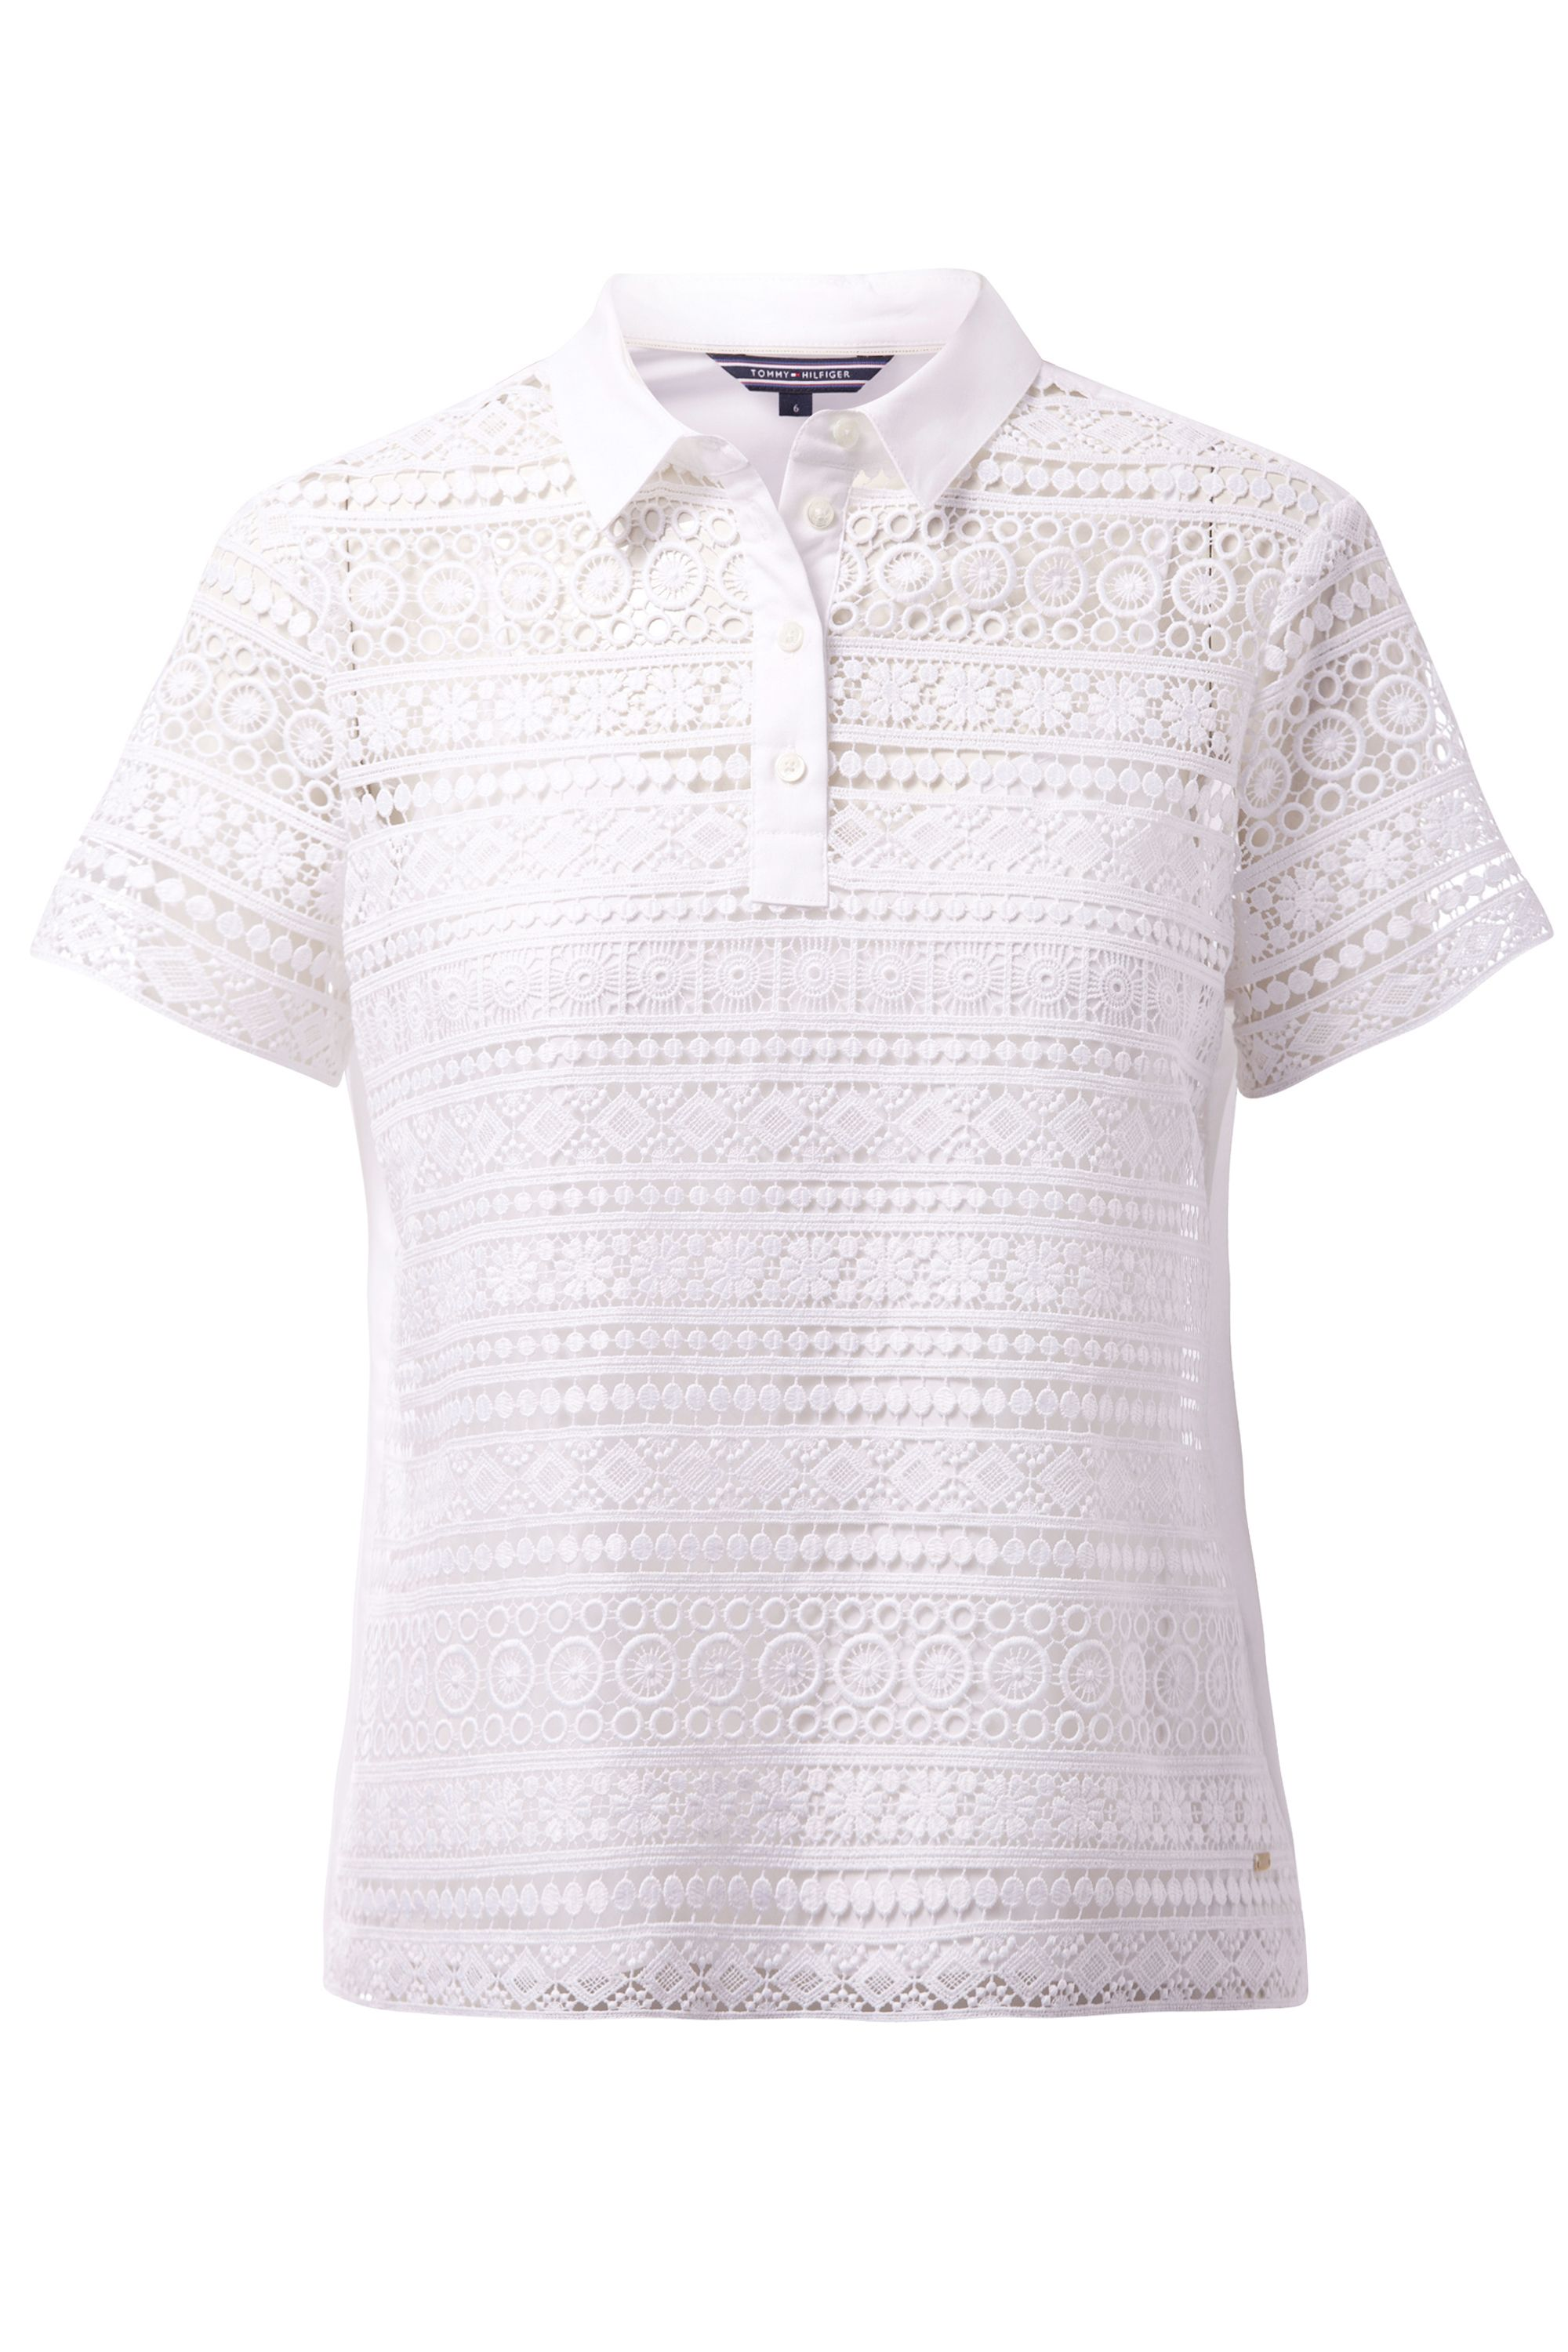 Tommy Hilfiger Aspen Polo Top, White